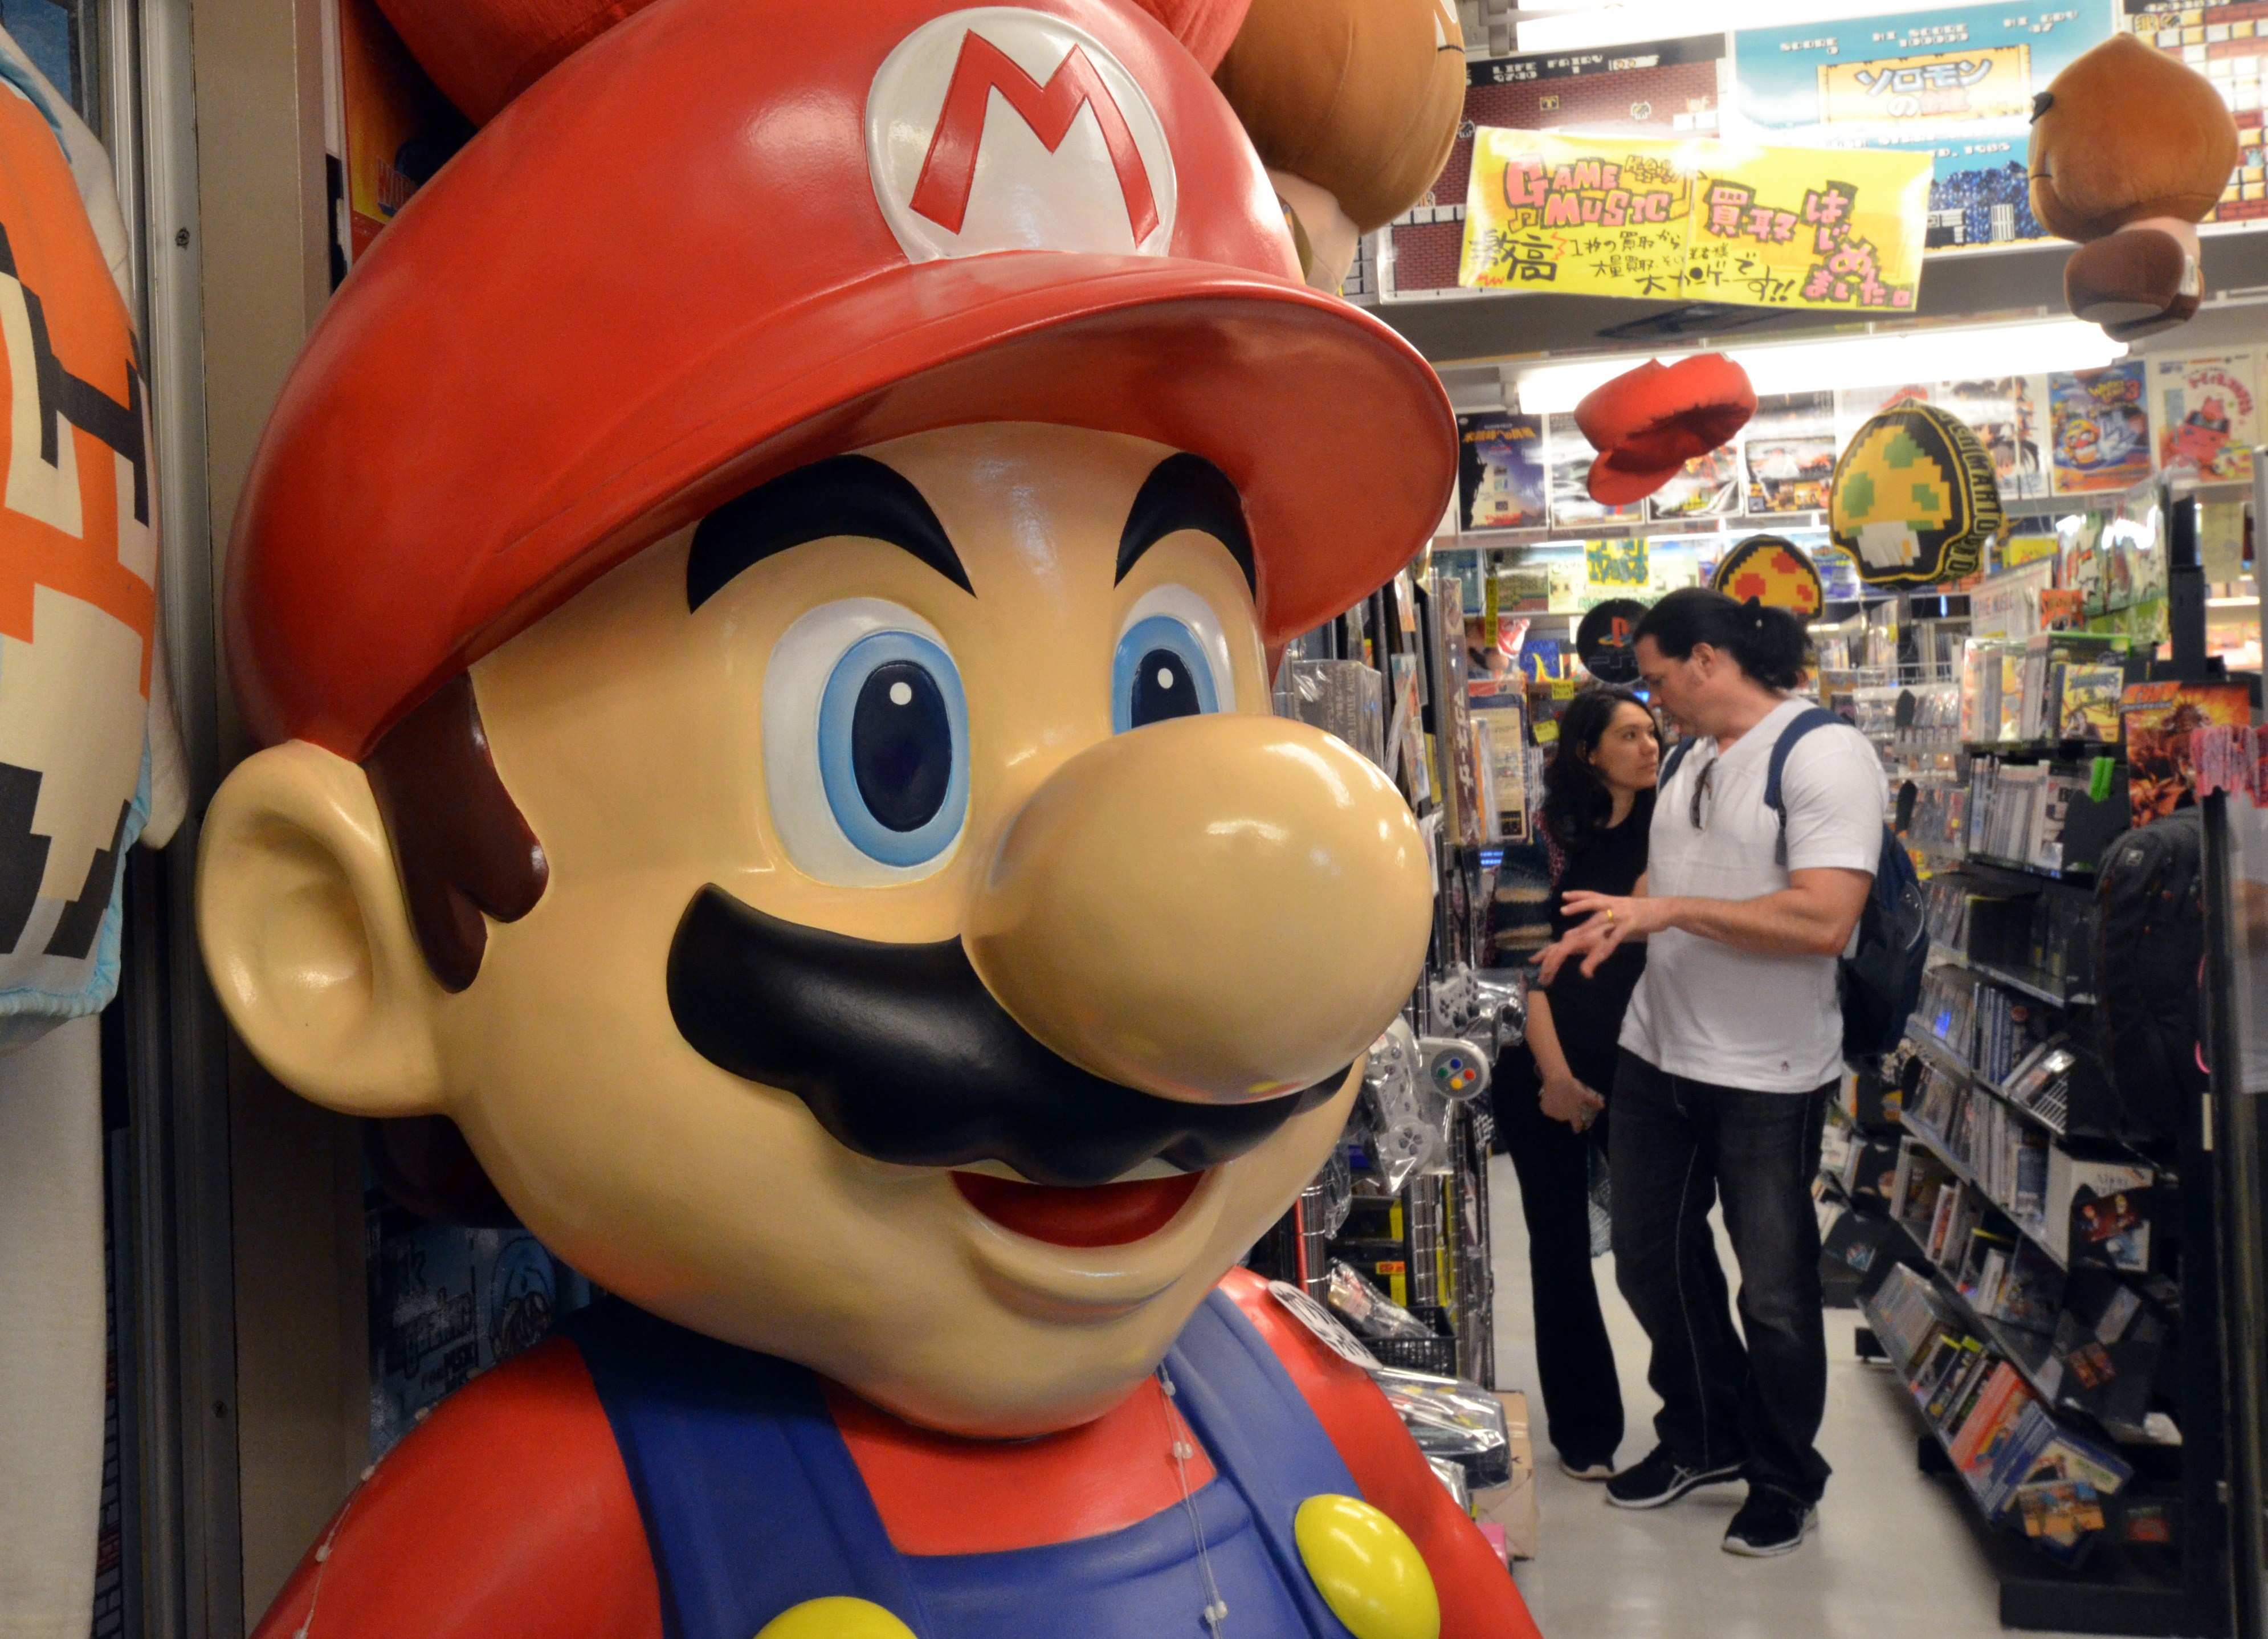 This picture taken on April 17, 2014 shows customers check used videogame consoles and softwares at a videogame shop in Tokyo, while a large figure of Nintendo's character Super Mario stands.